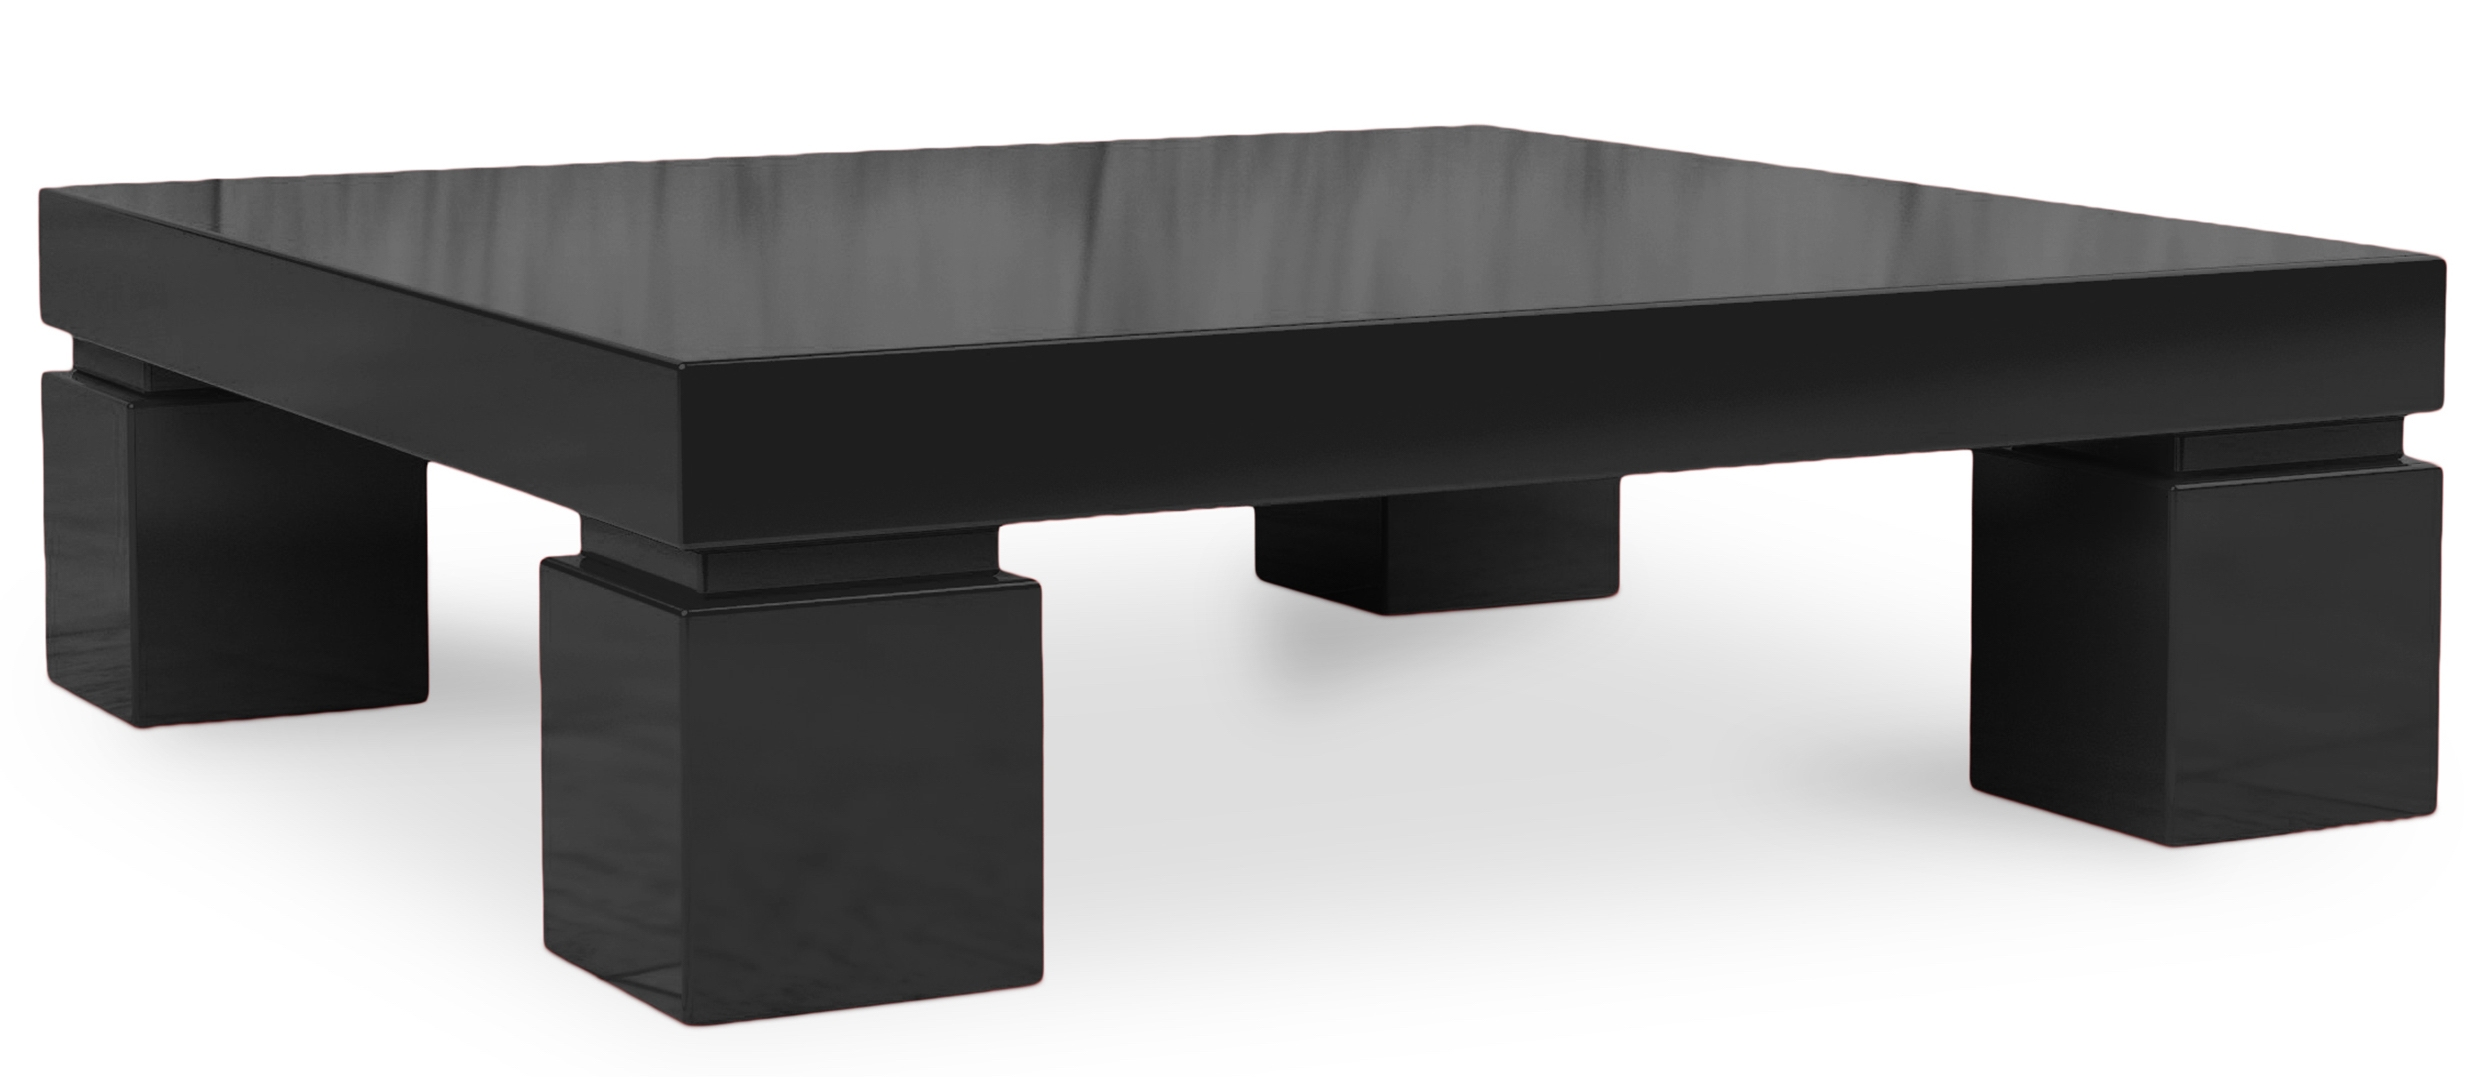 table basse carr e laqu e noir kare. Black Bedroom Furniture Sets. Home Design Ideas